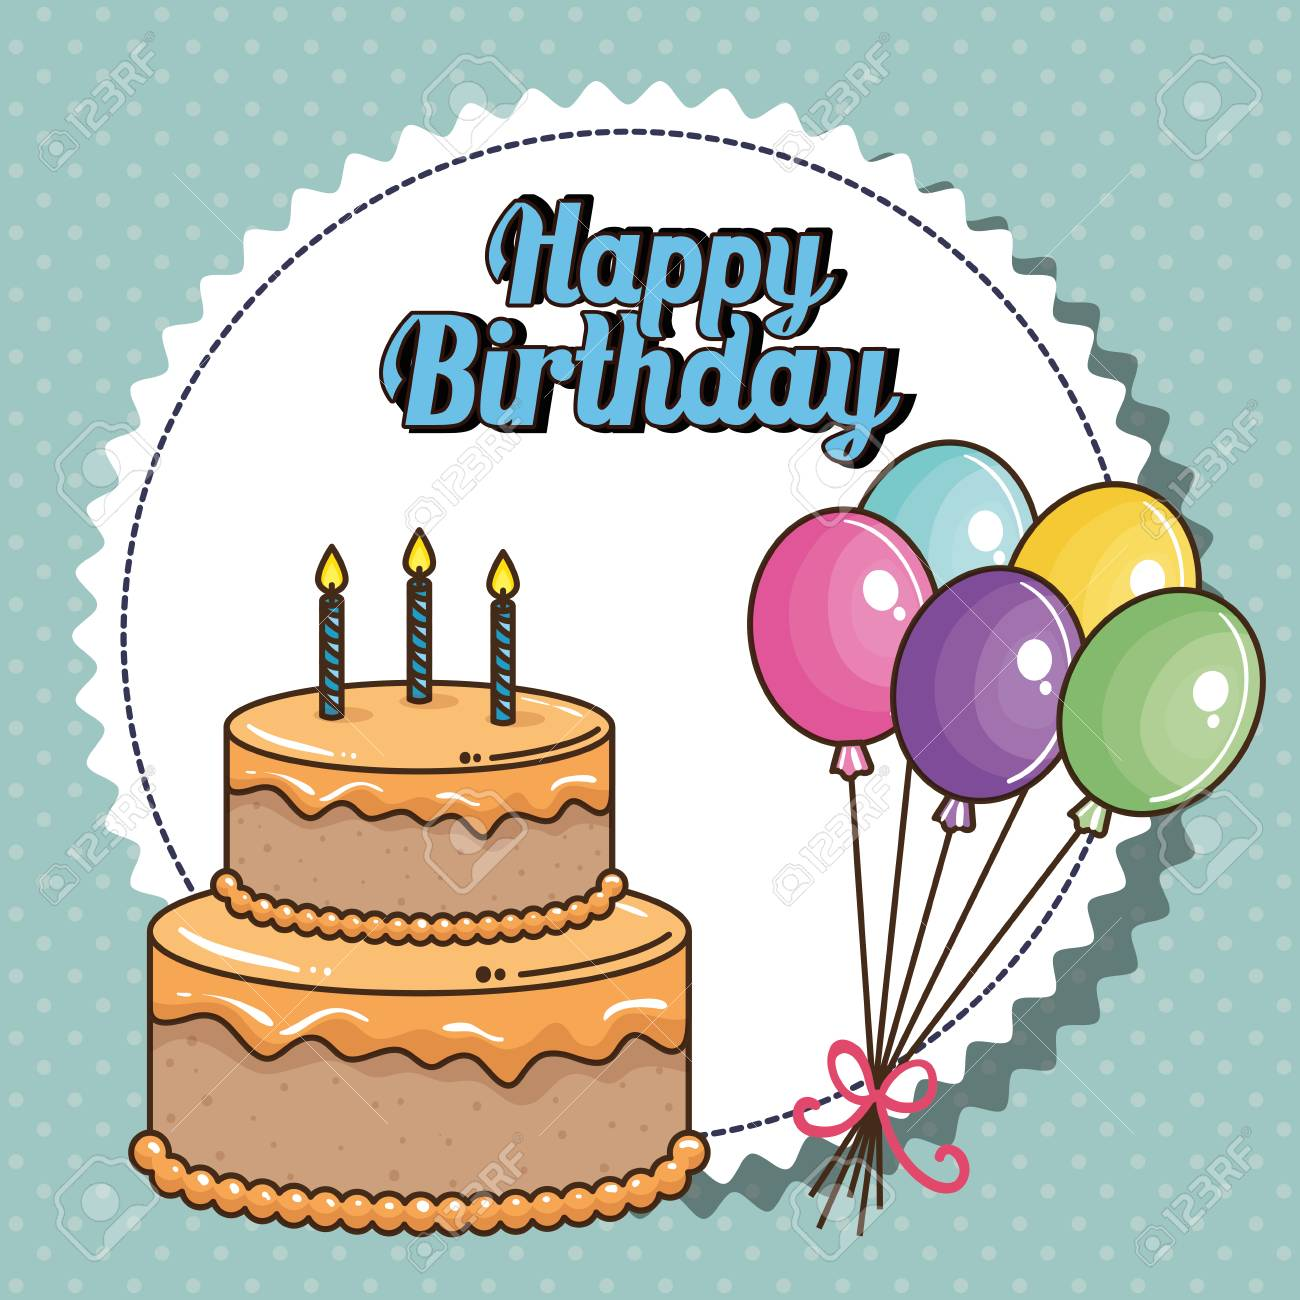 Happy Birthday Card With Sweet Cake Vector Illustration Design Stock